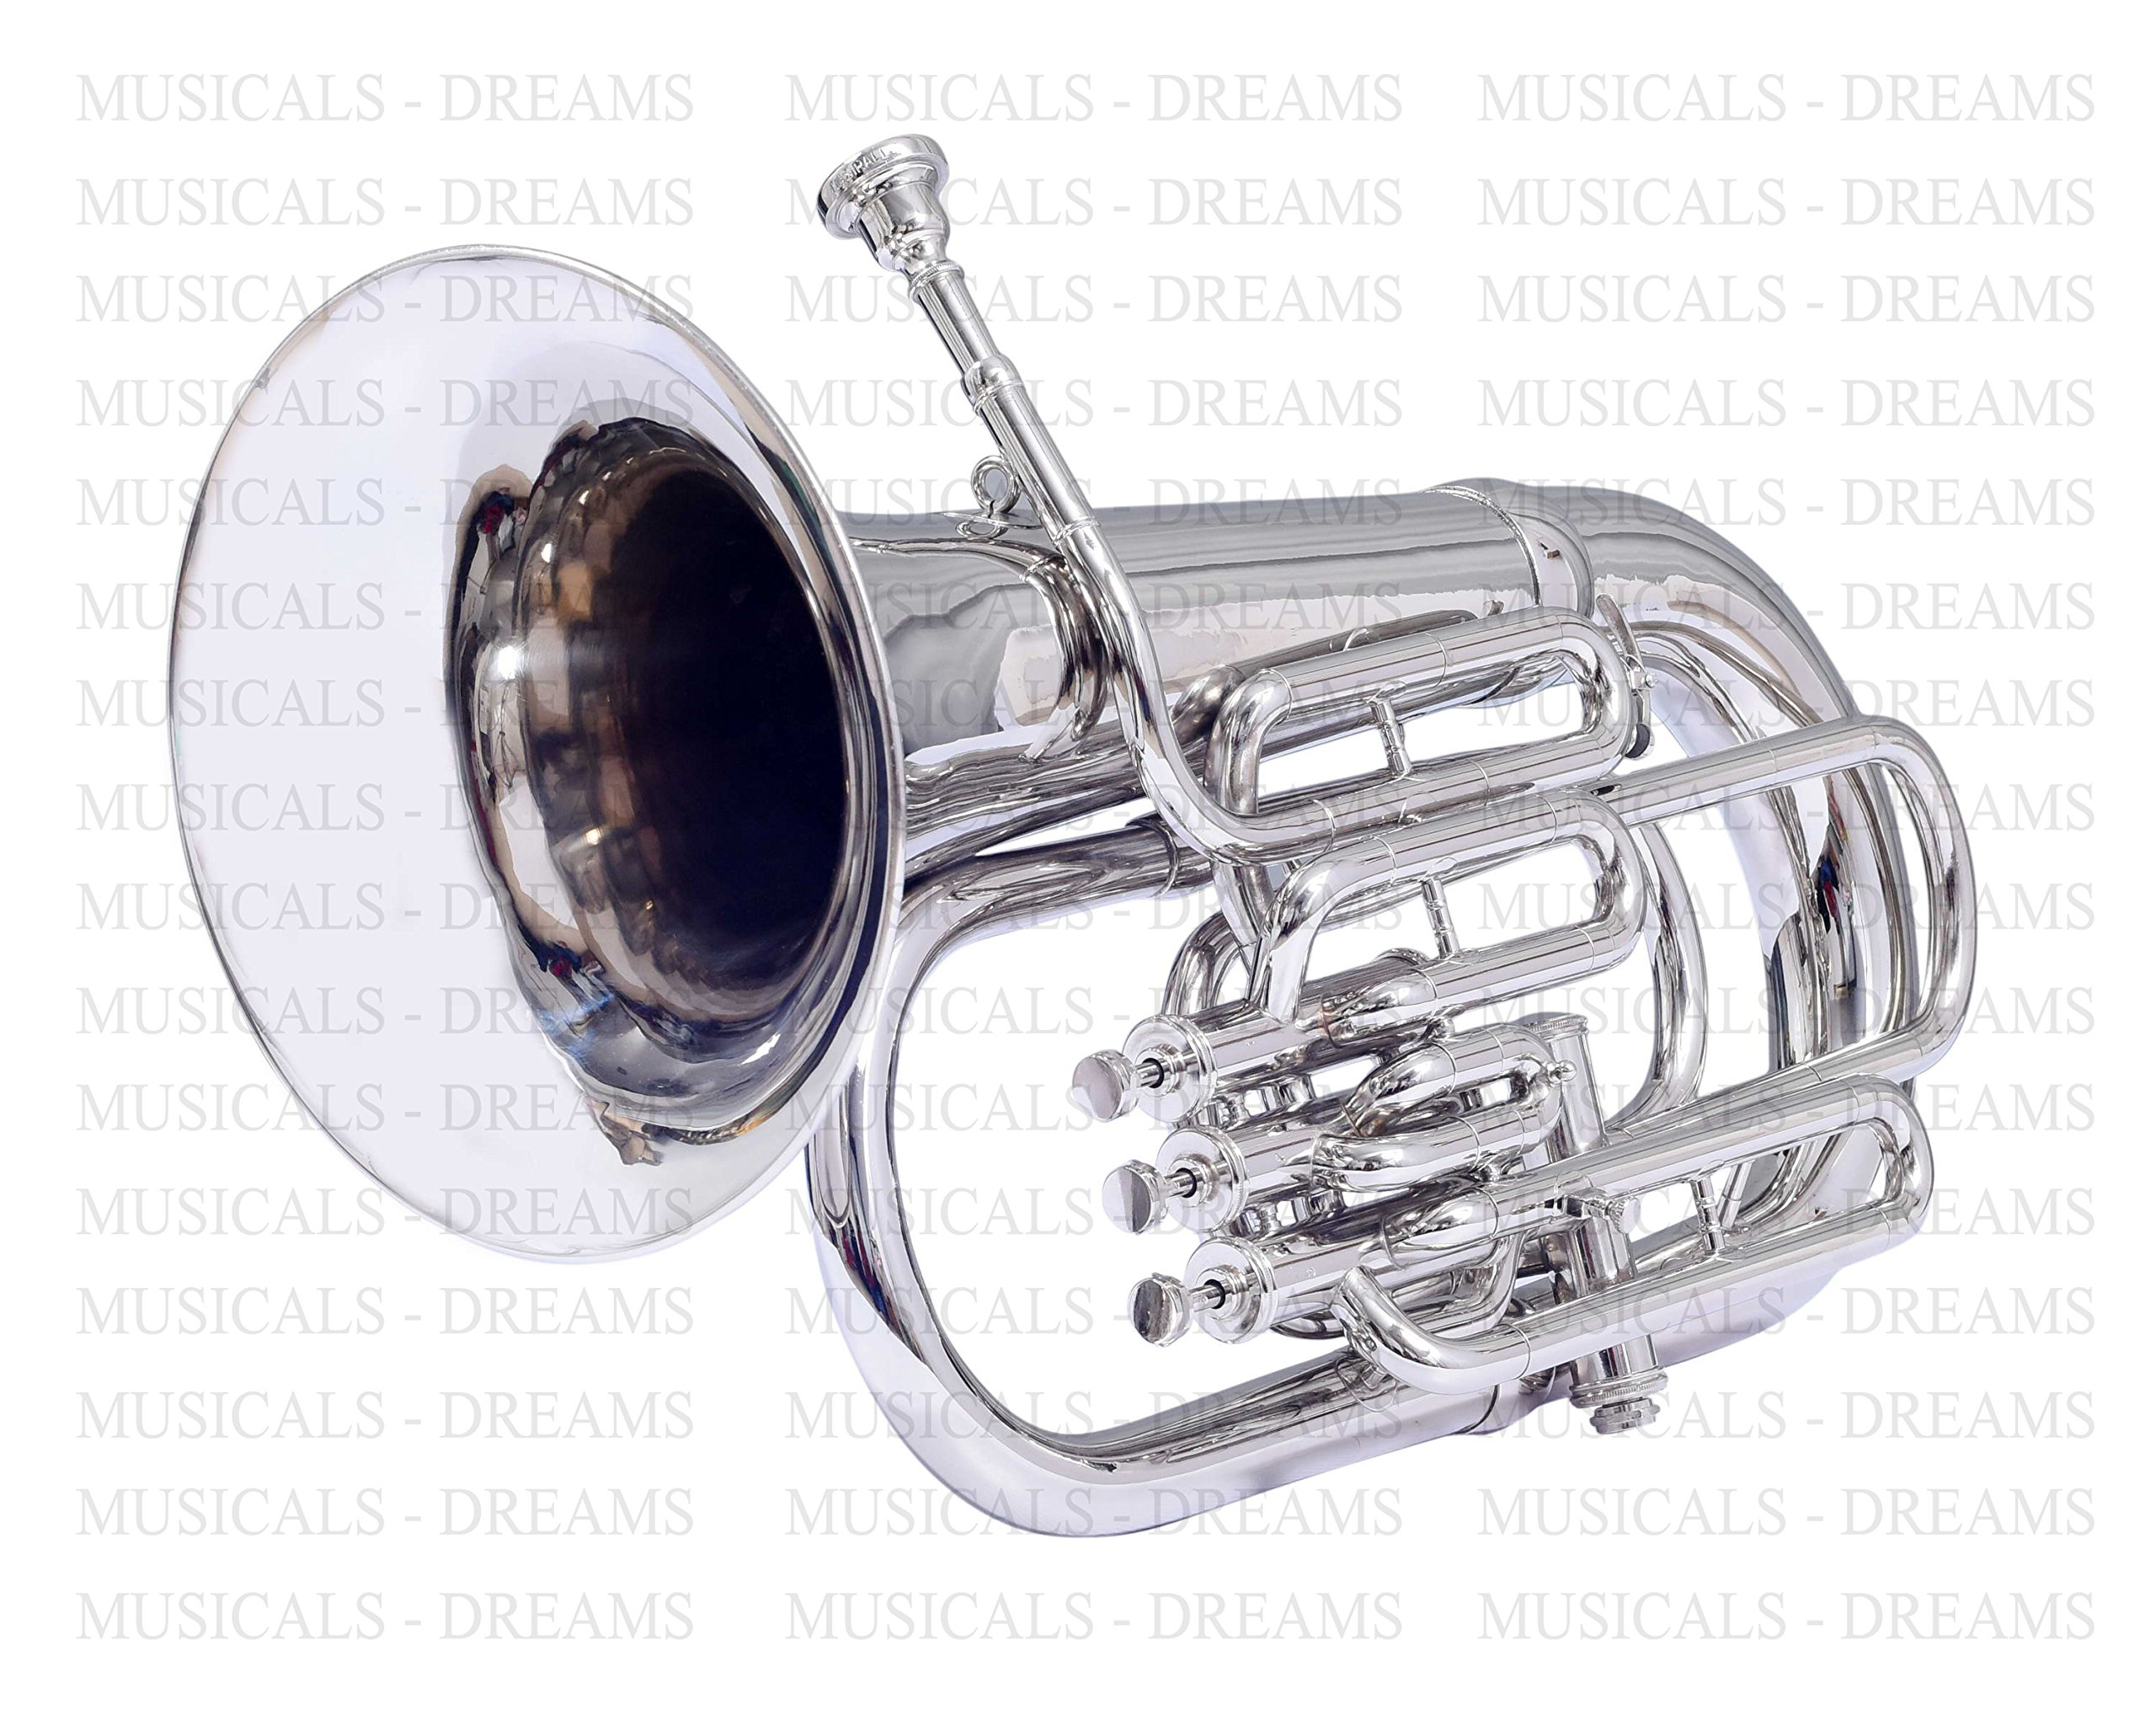 Moonflag Bb Euphonium Nickel 4 Valve by NASIR ALI (Image #1)